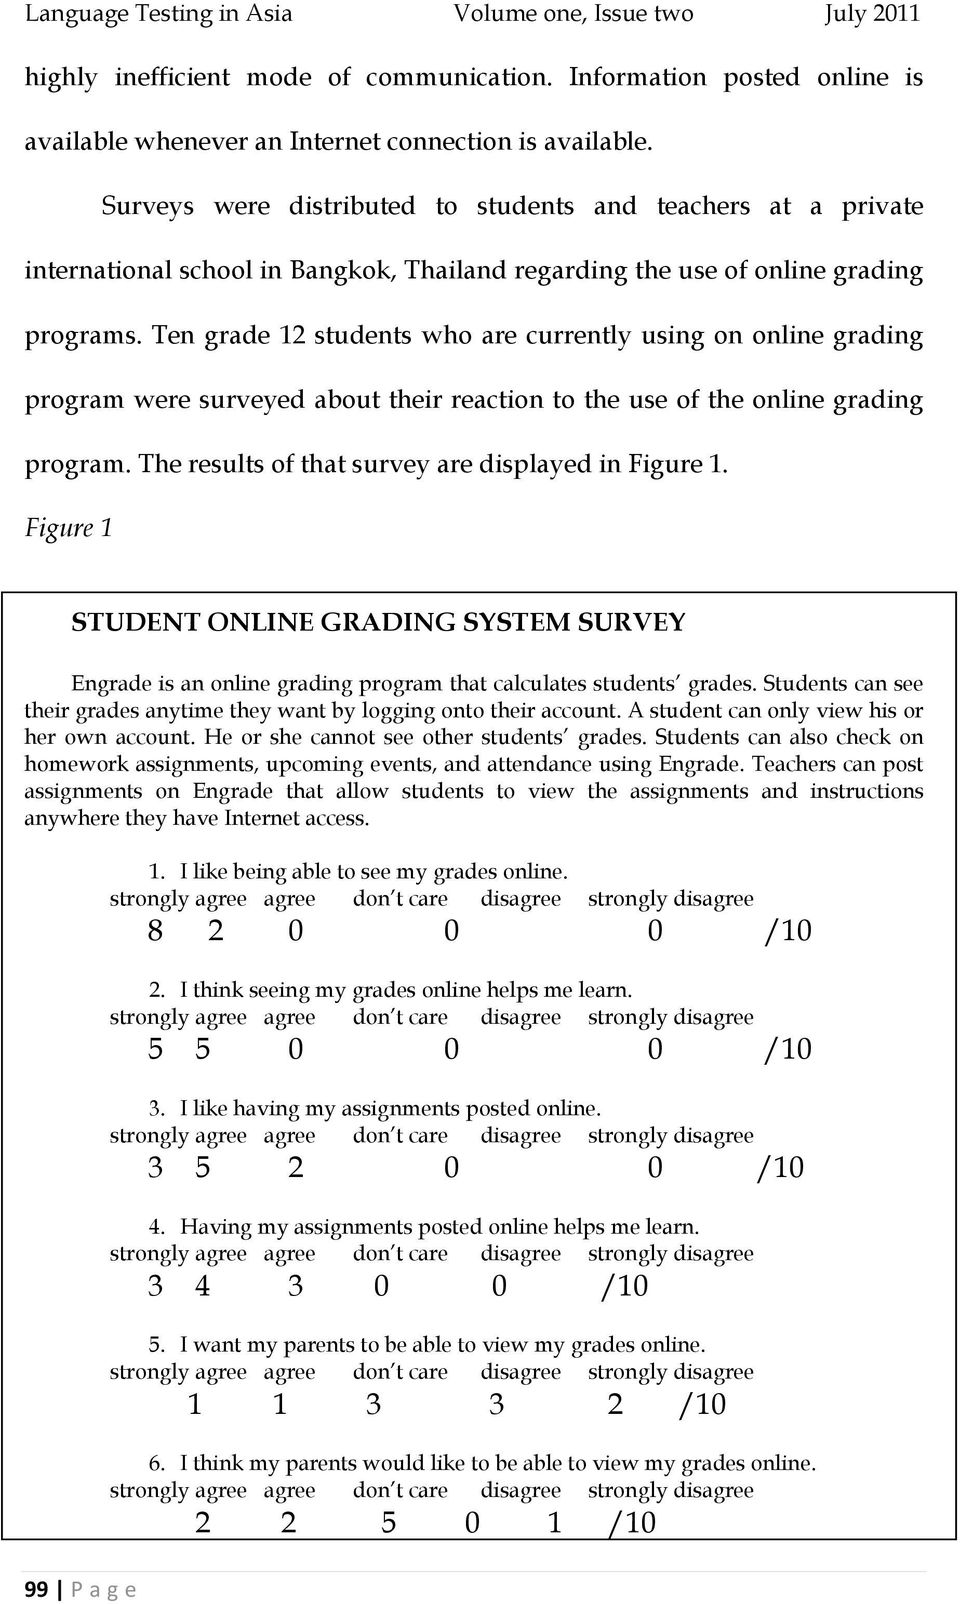 Ten grade 12 students who are currently using on online grading program were surveyed about their reaction to the use of the online grading program.